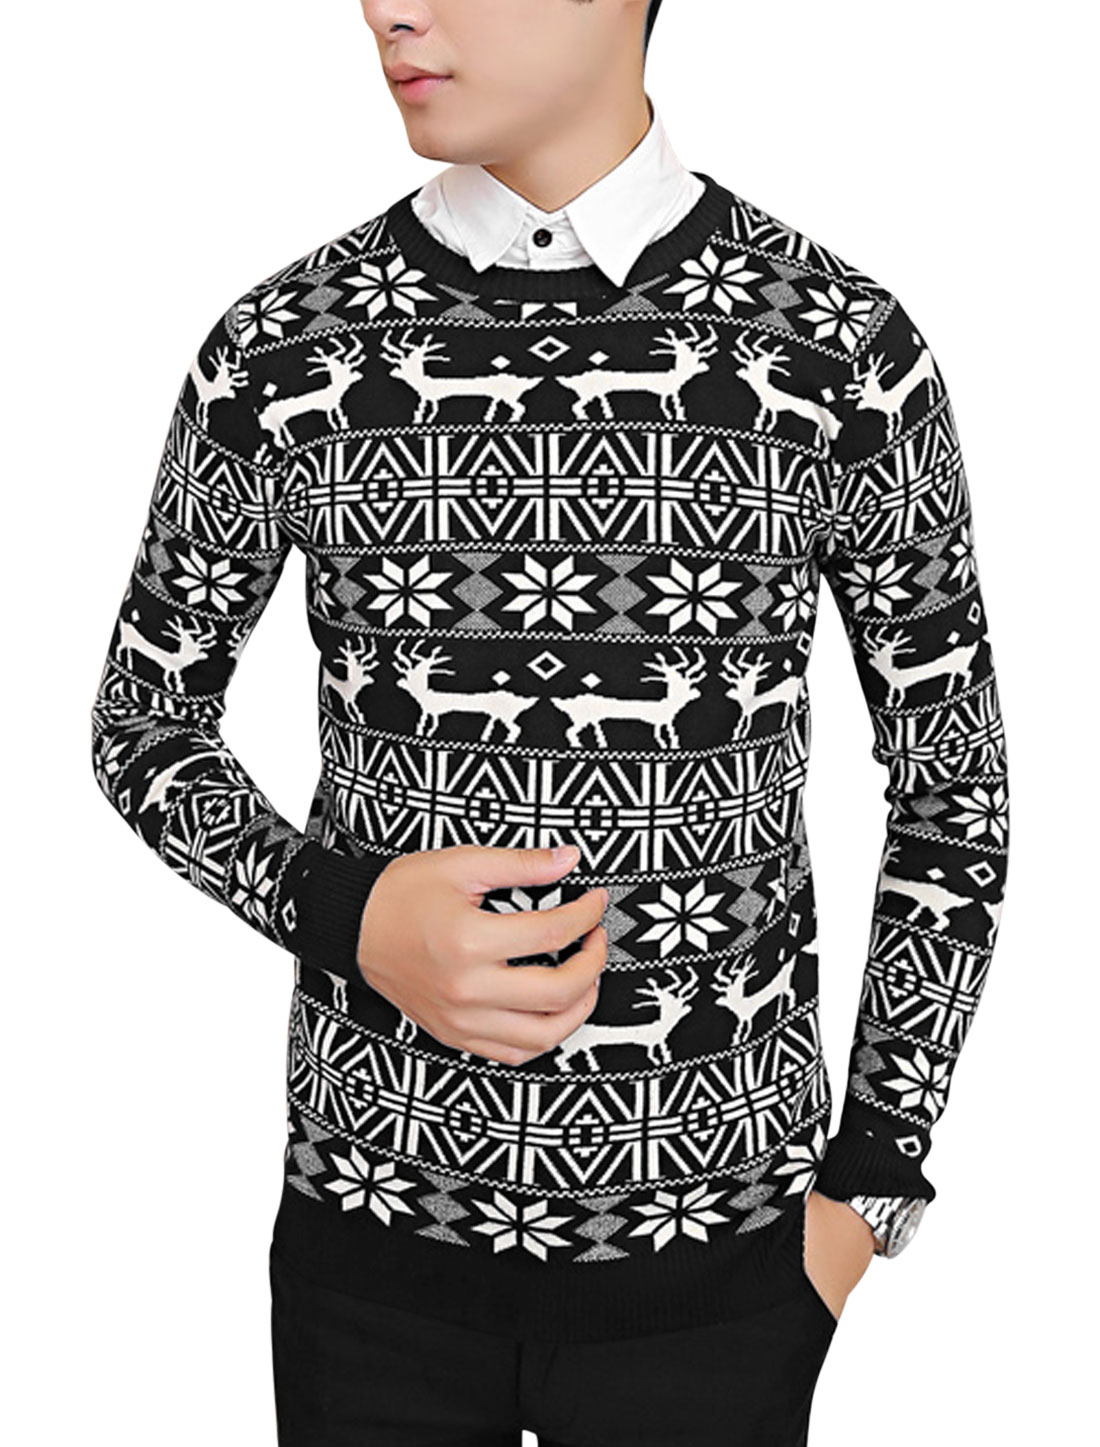 Men Pullover Geometric Deer Pattern Casual Knit Shirt Black M